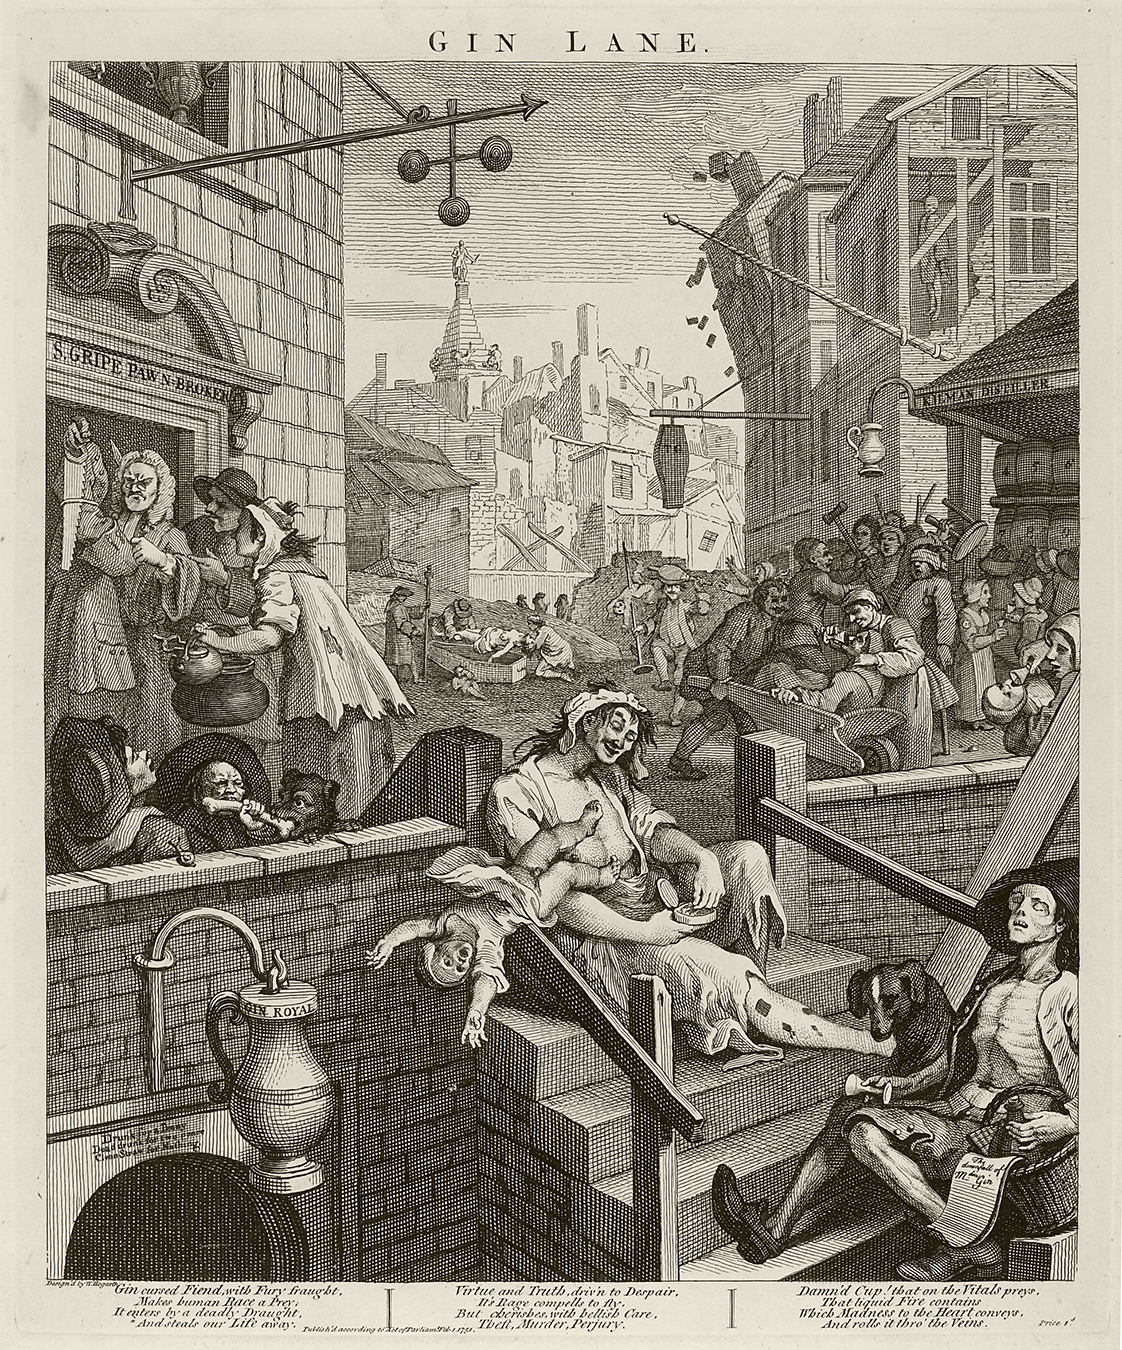 Black and white etching of an 18th century street scene depicting groups of villagers drinking and socializing.